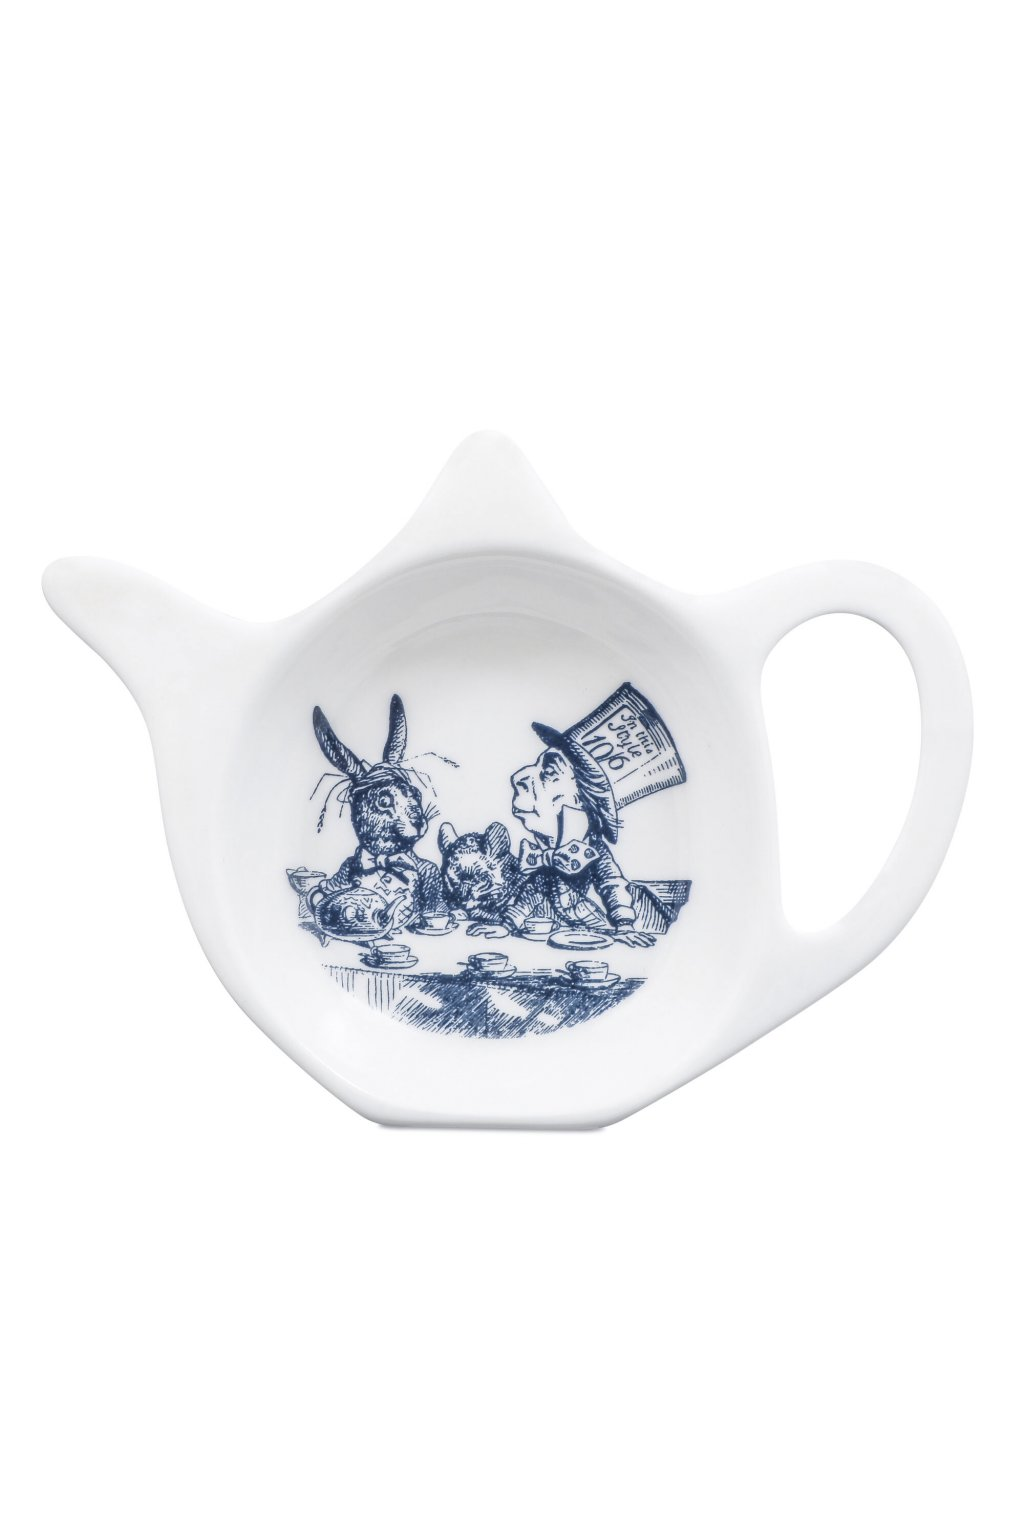 322106 ALICE IN WONDERLAND TEAPARTY TEA TIDY 1